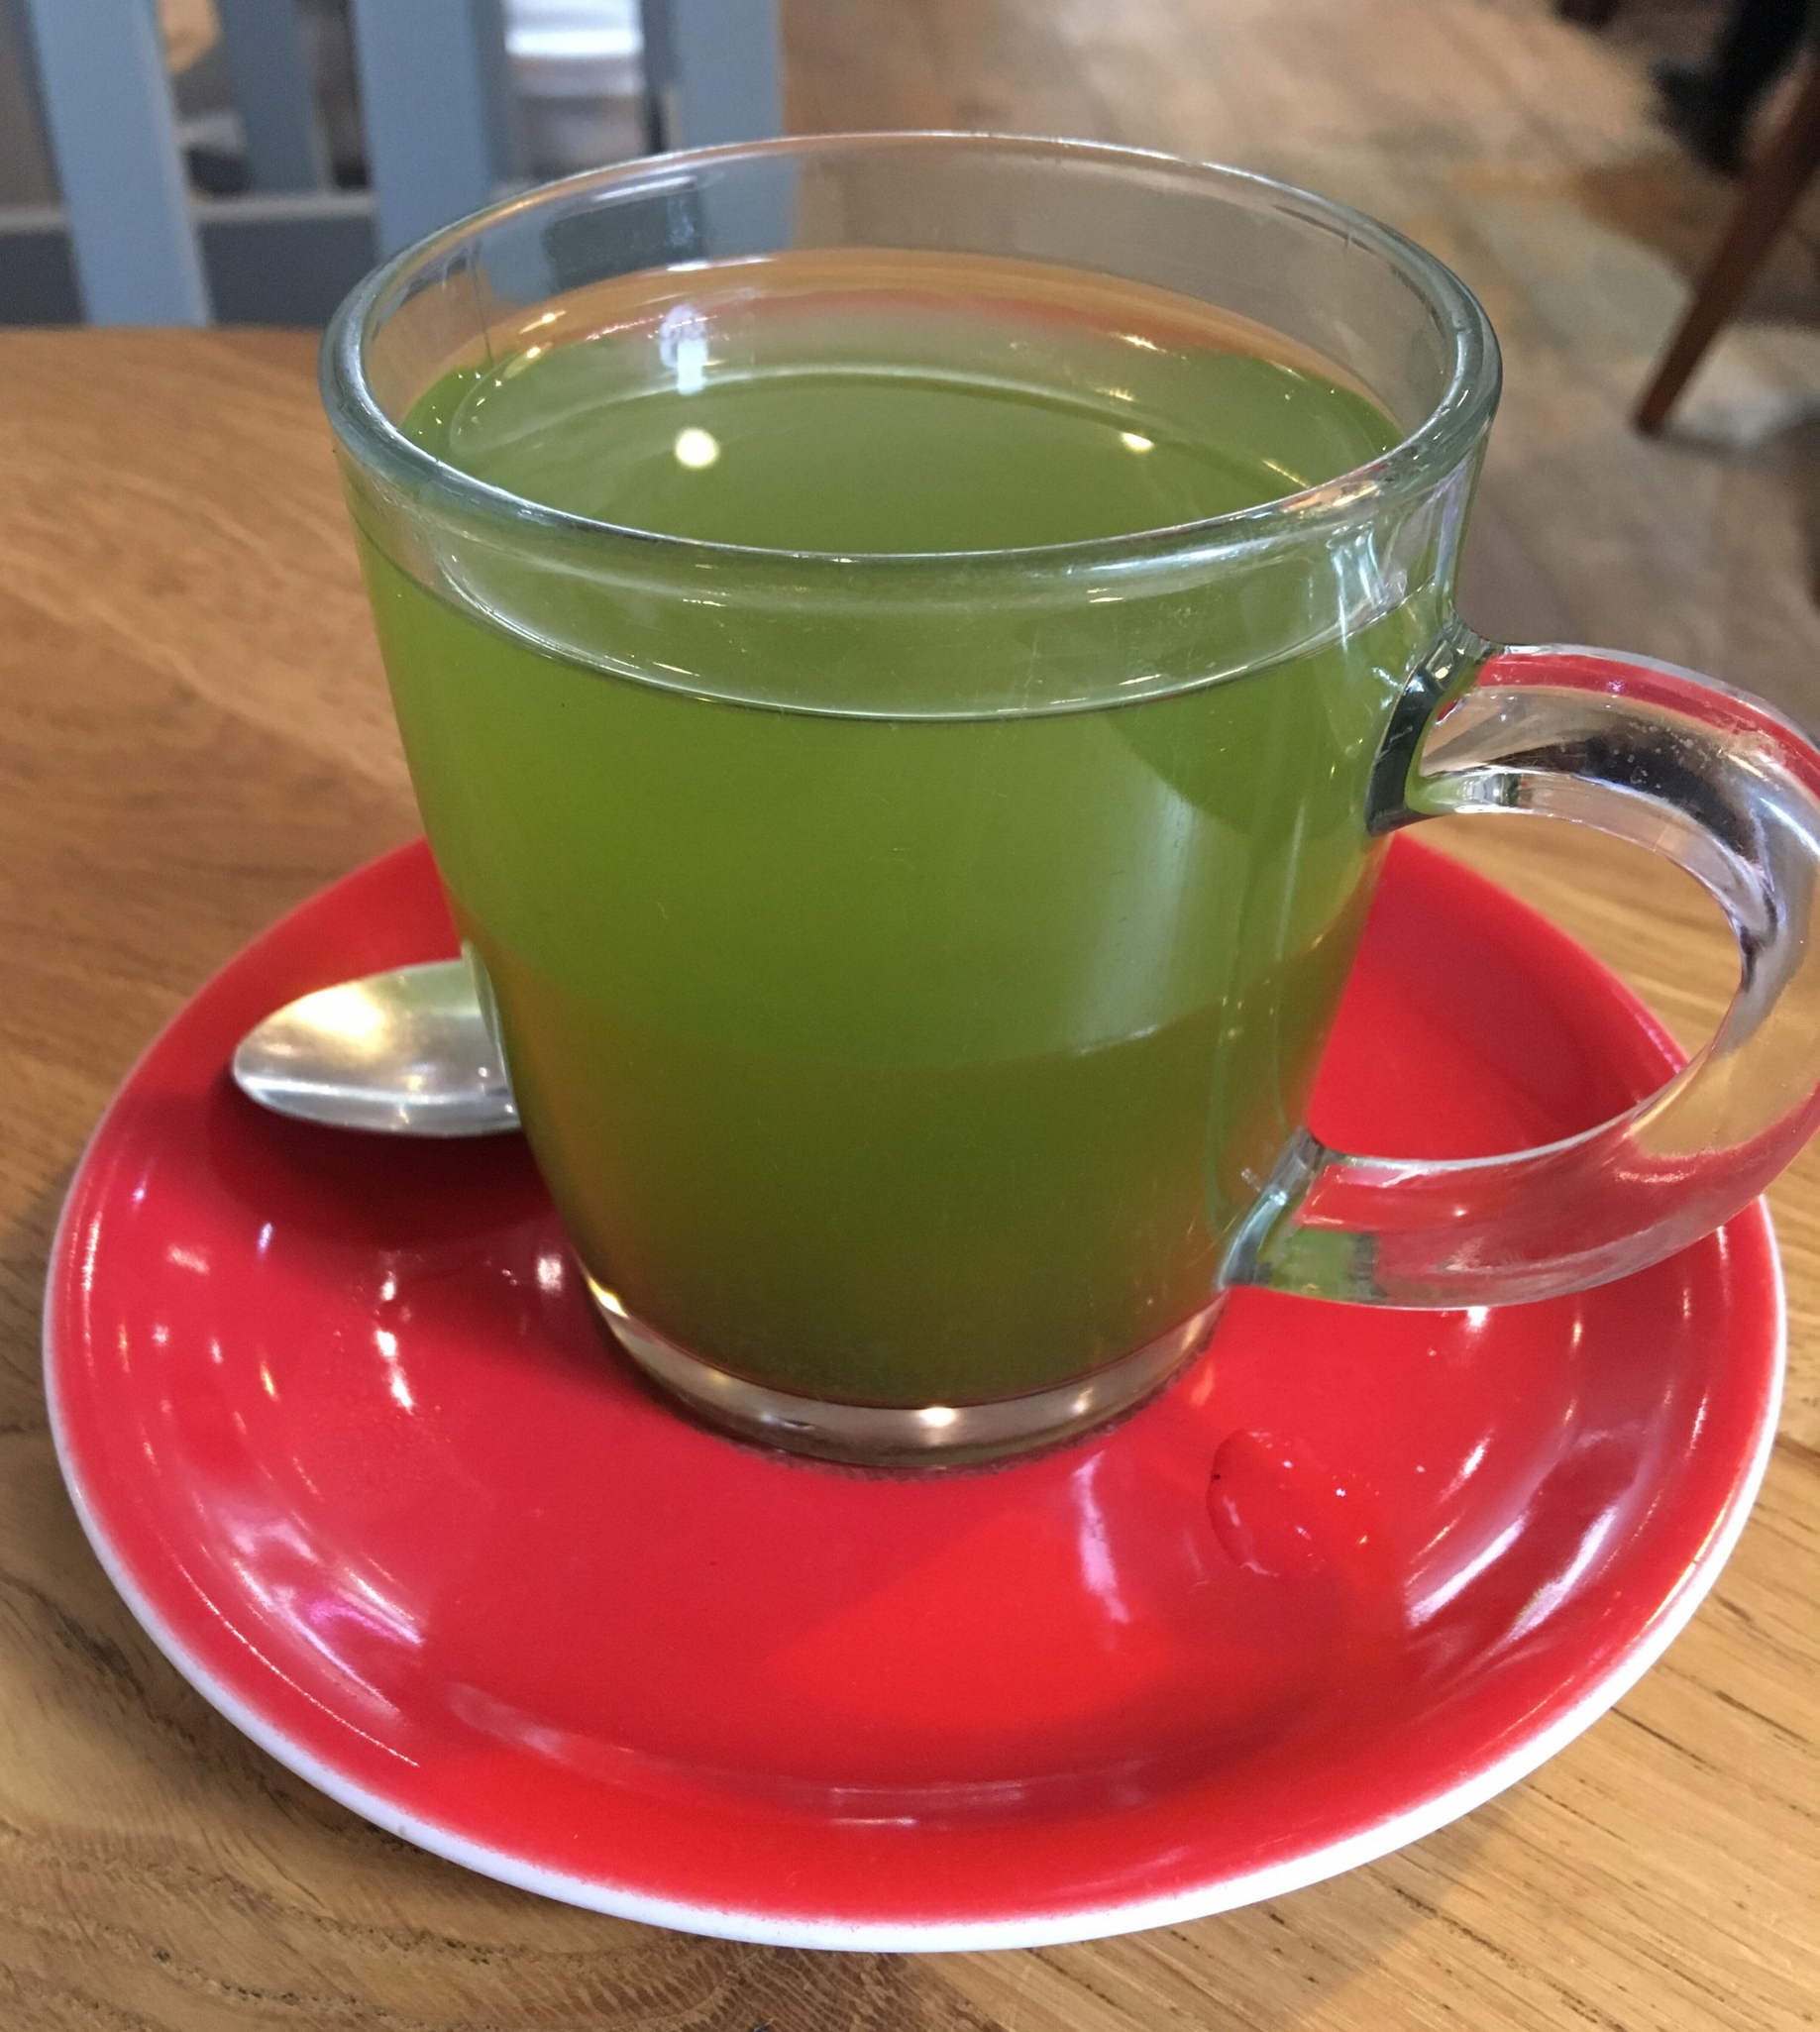 Its very green but Matcha Tea is such a great way to get some clean energy!